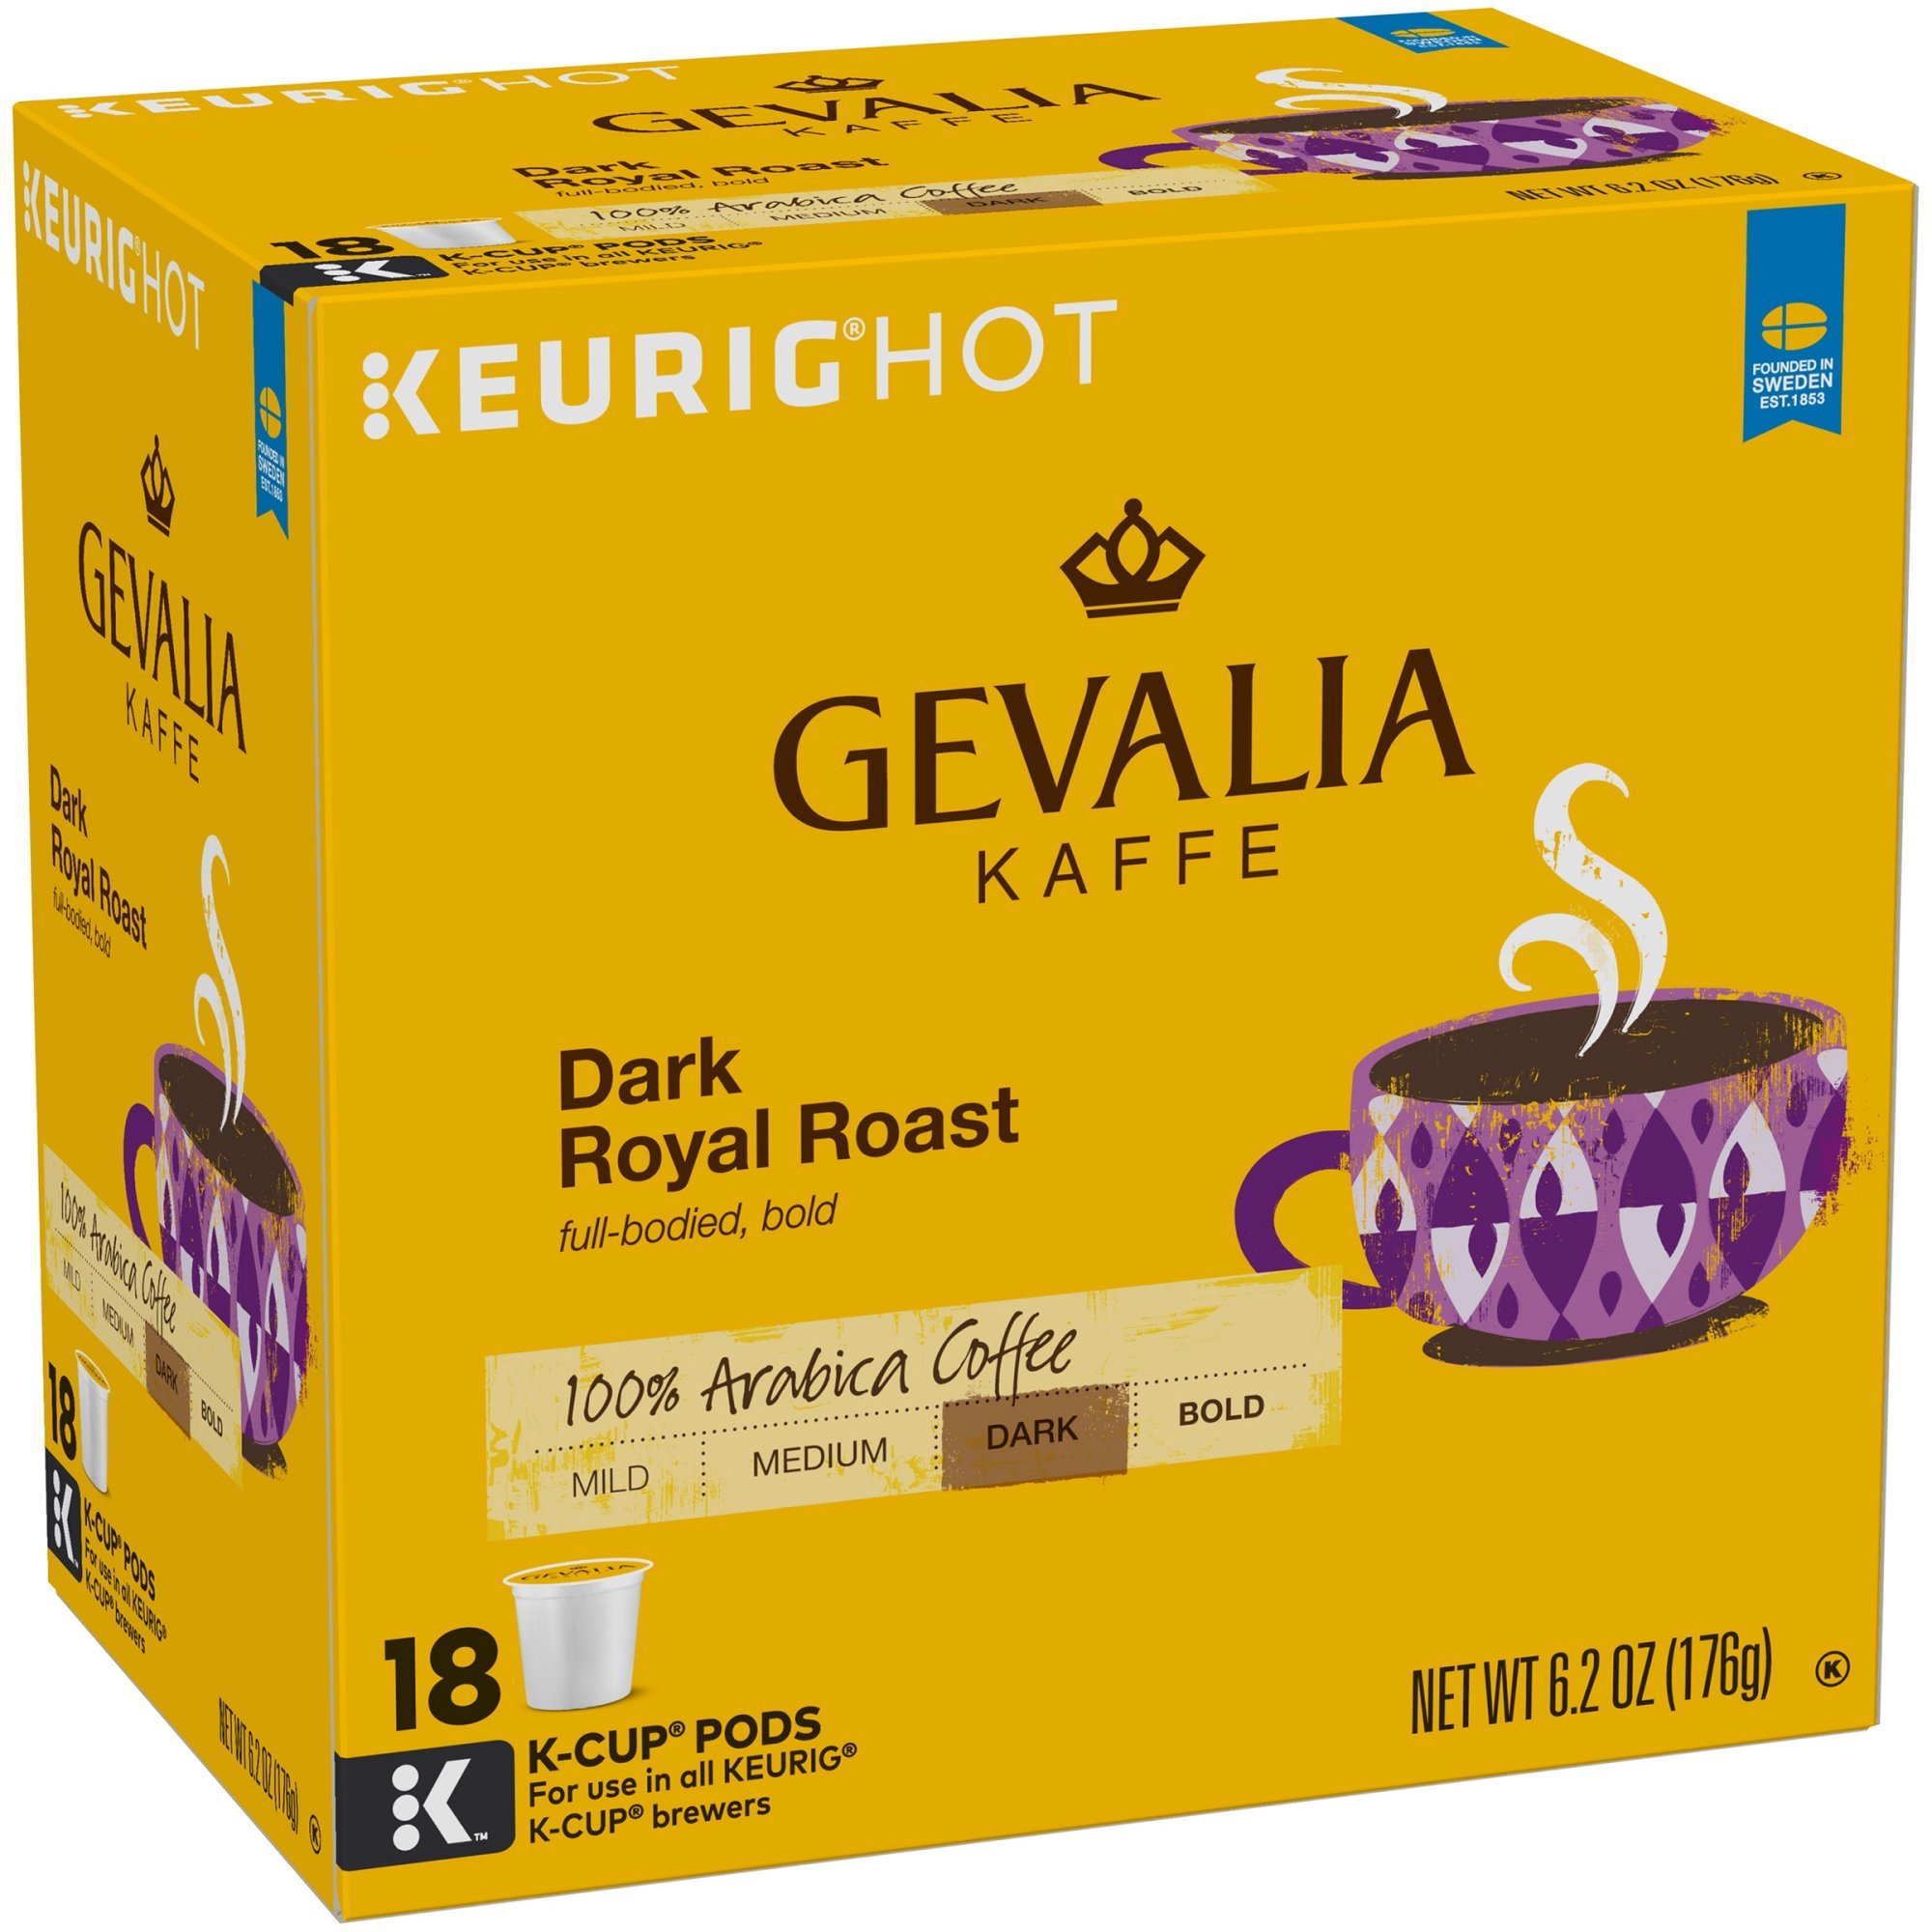 Gevalia Dark Royal Roast Coffee K-Cup Pods 18 Count Box (Pack of 2) by Gevalia